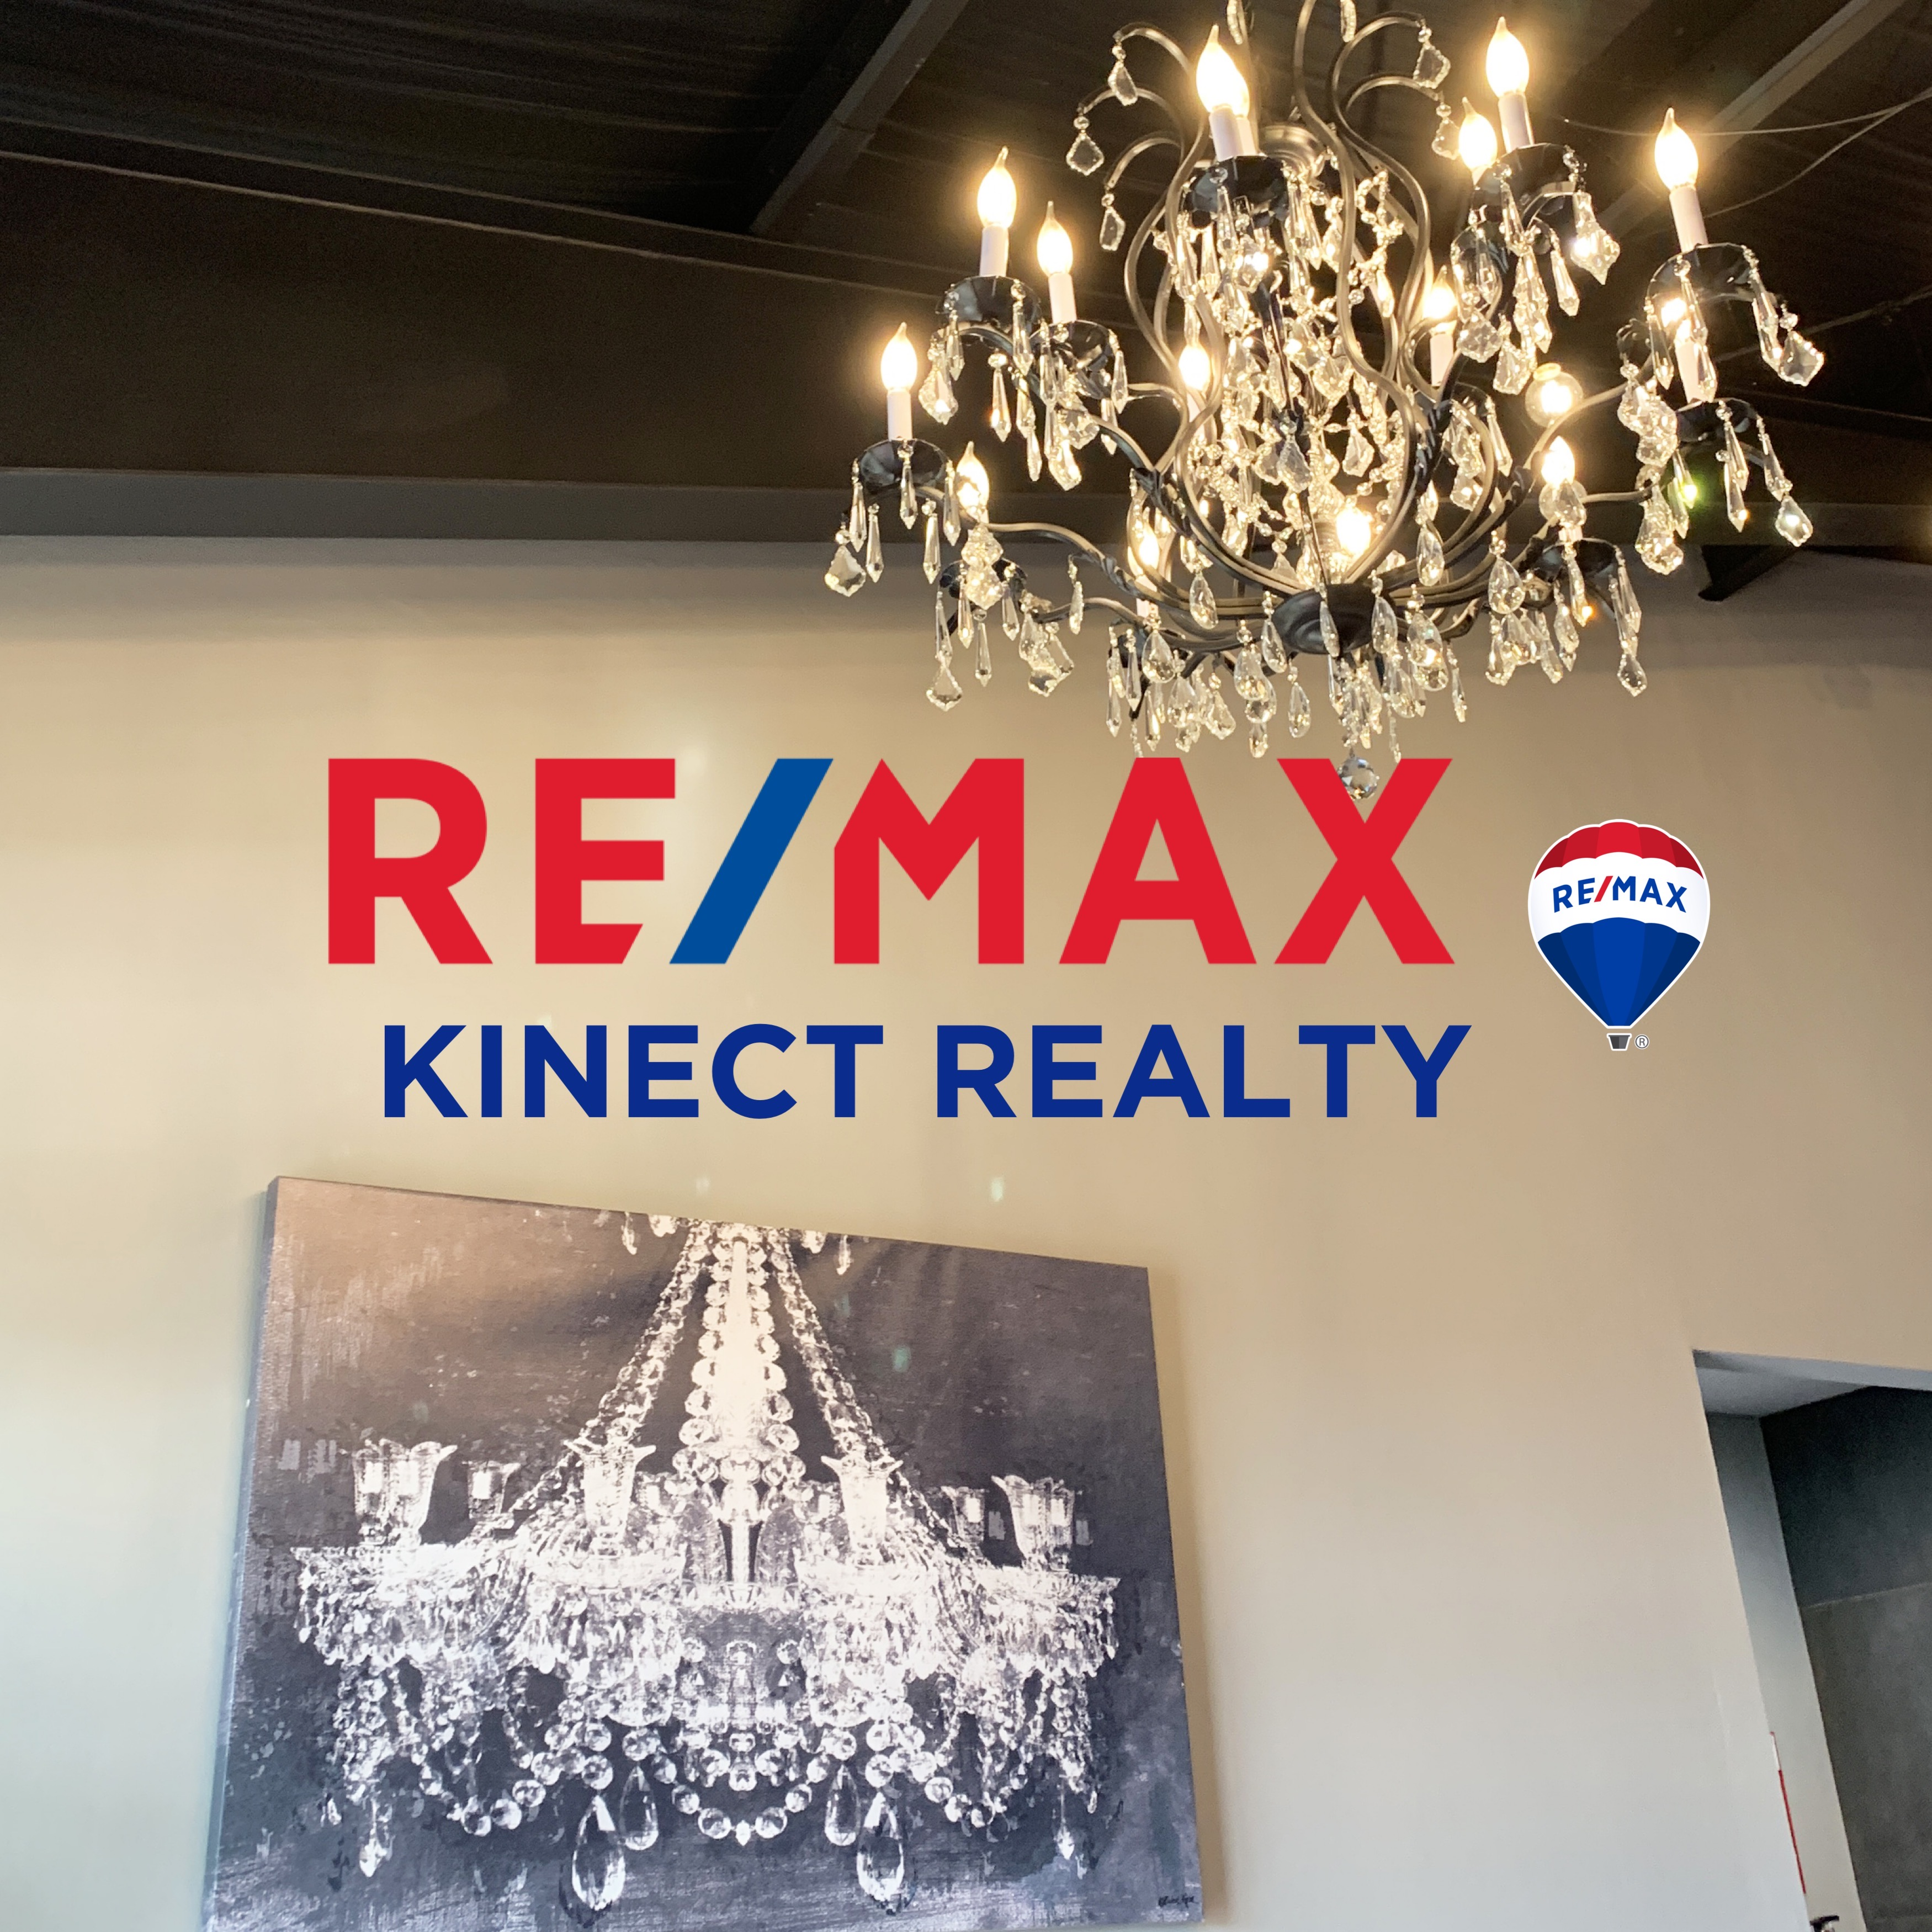 RE/MAX Kinect Realty